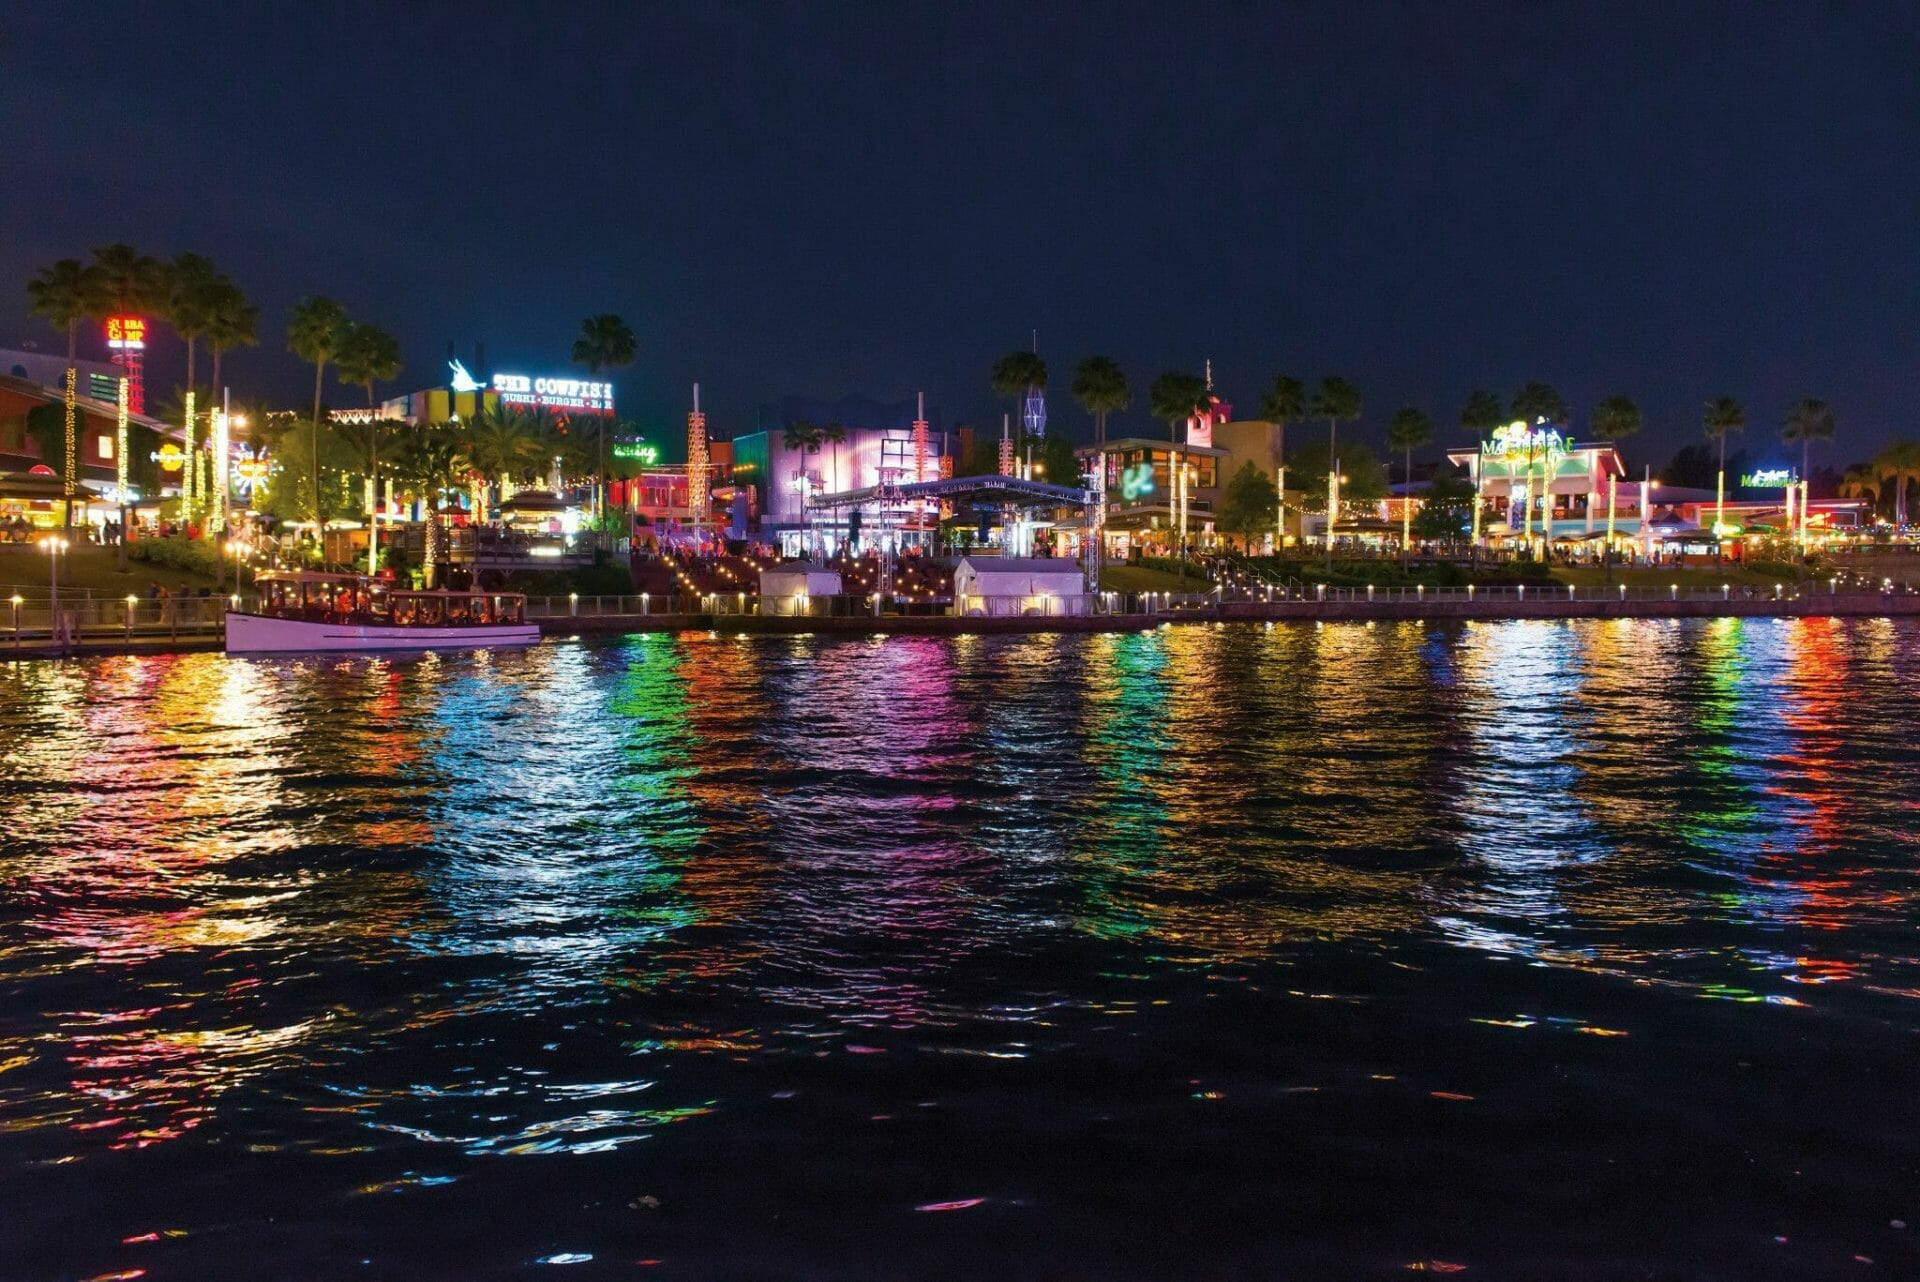 Date Night at CityWalk Universal Orlando Resort